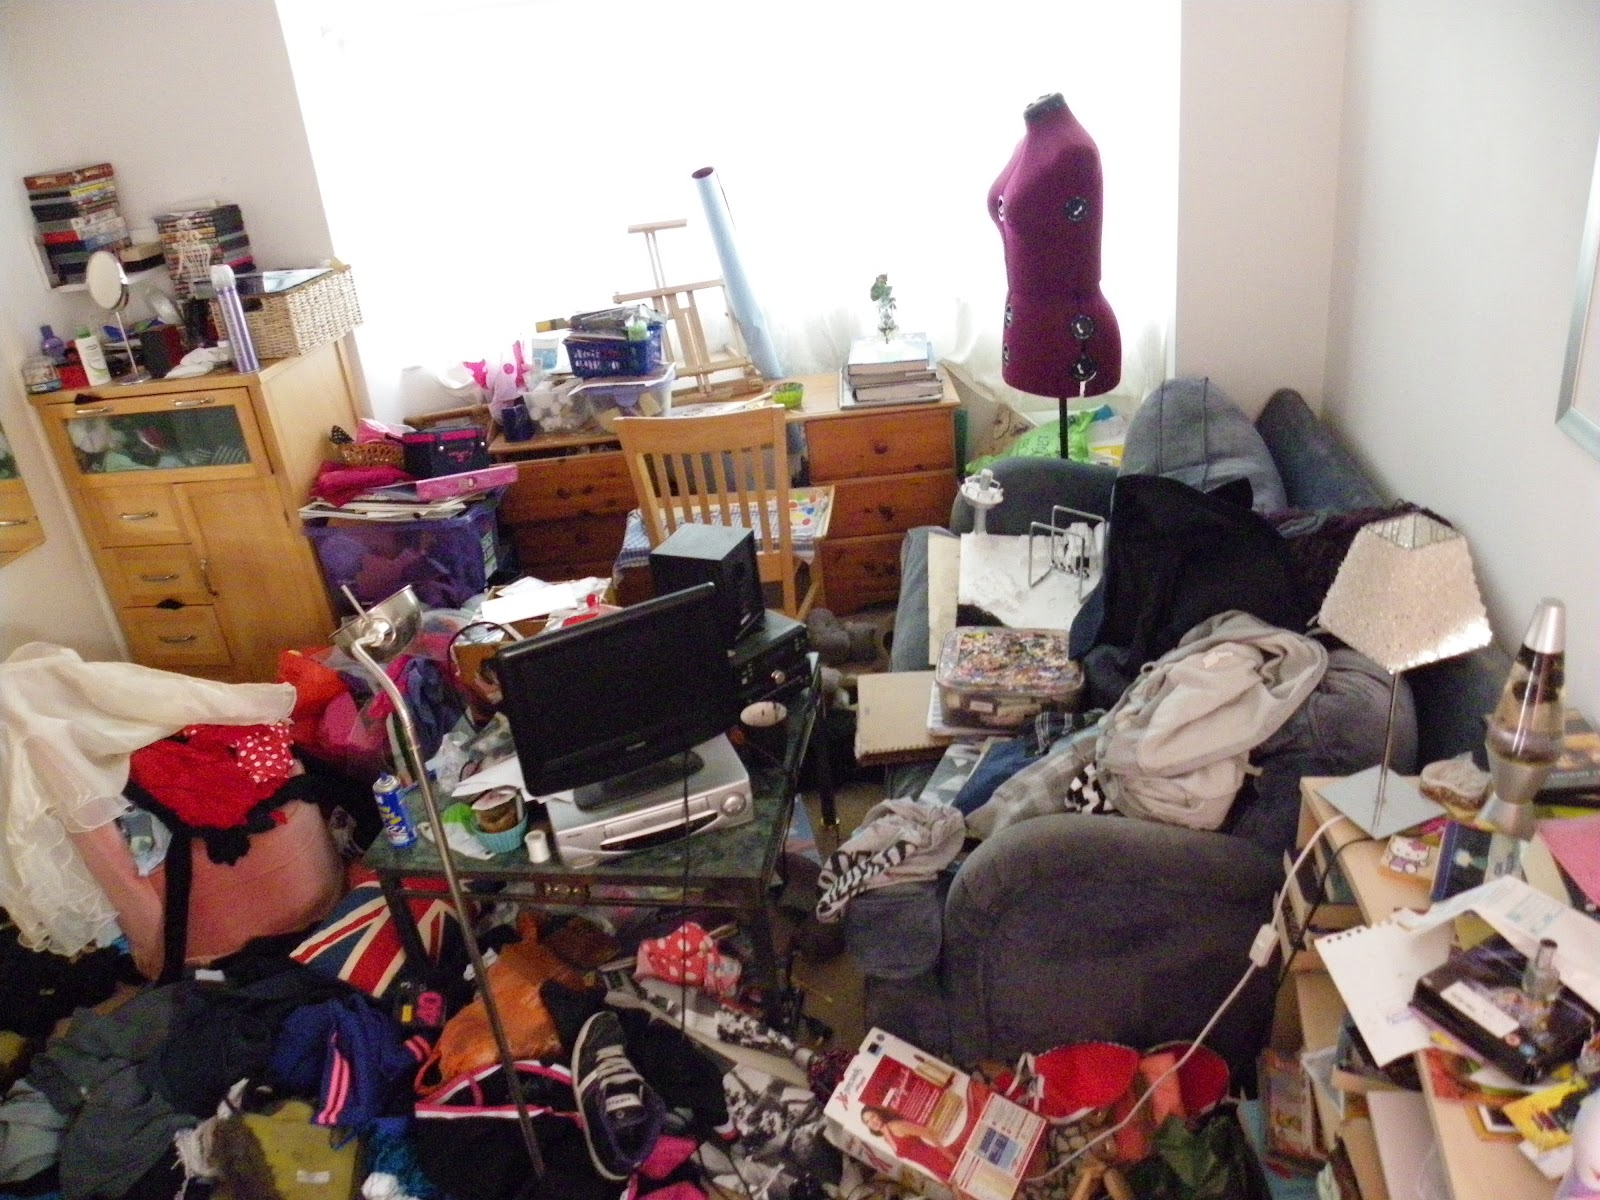 sammies mutterings analysis of a messy bedroom part 1